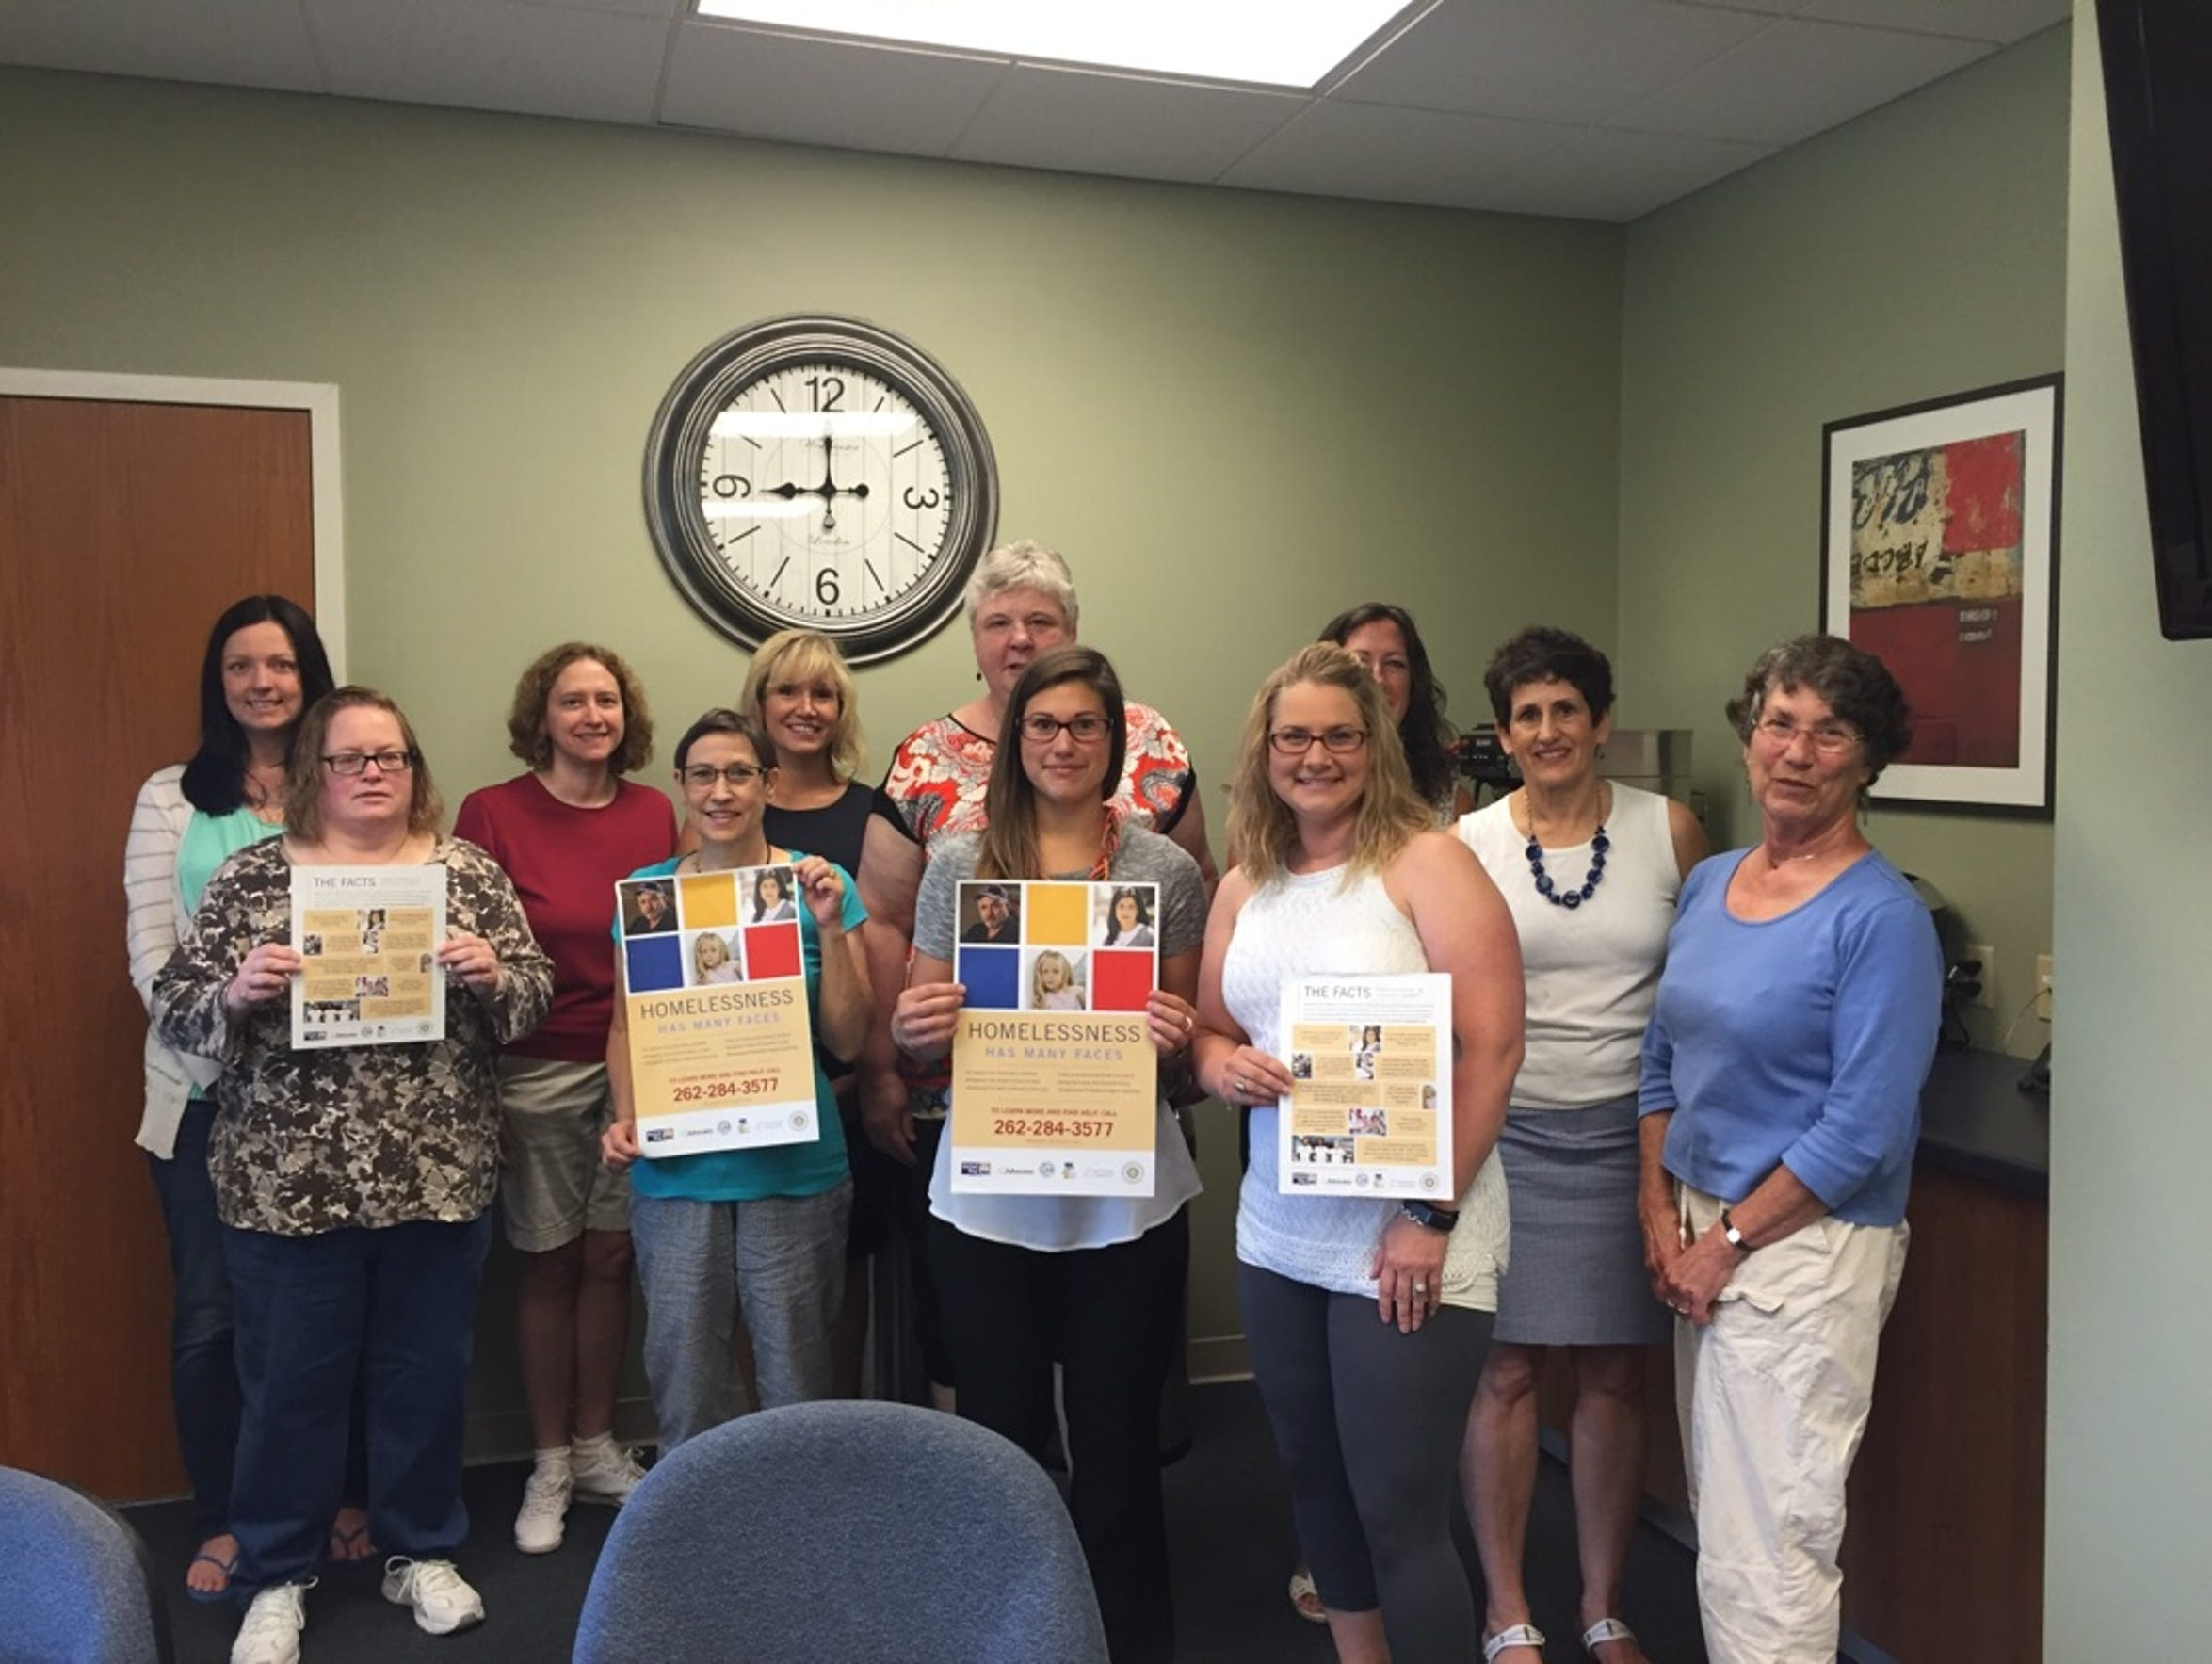 A homeless prevention meeting was held July 27 at the